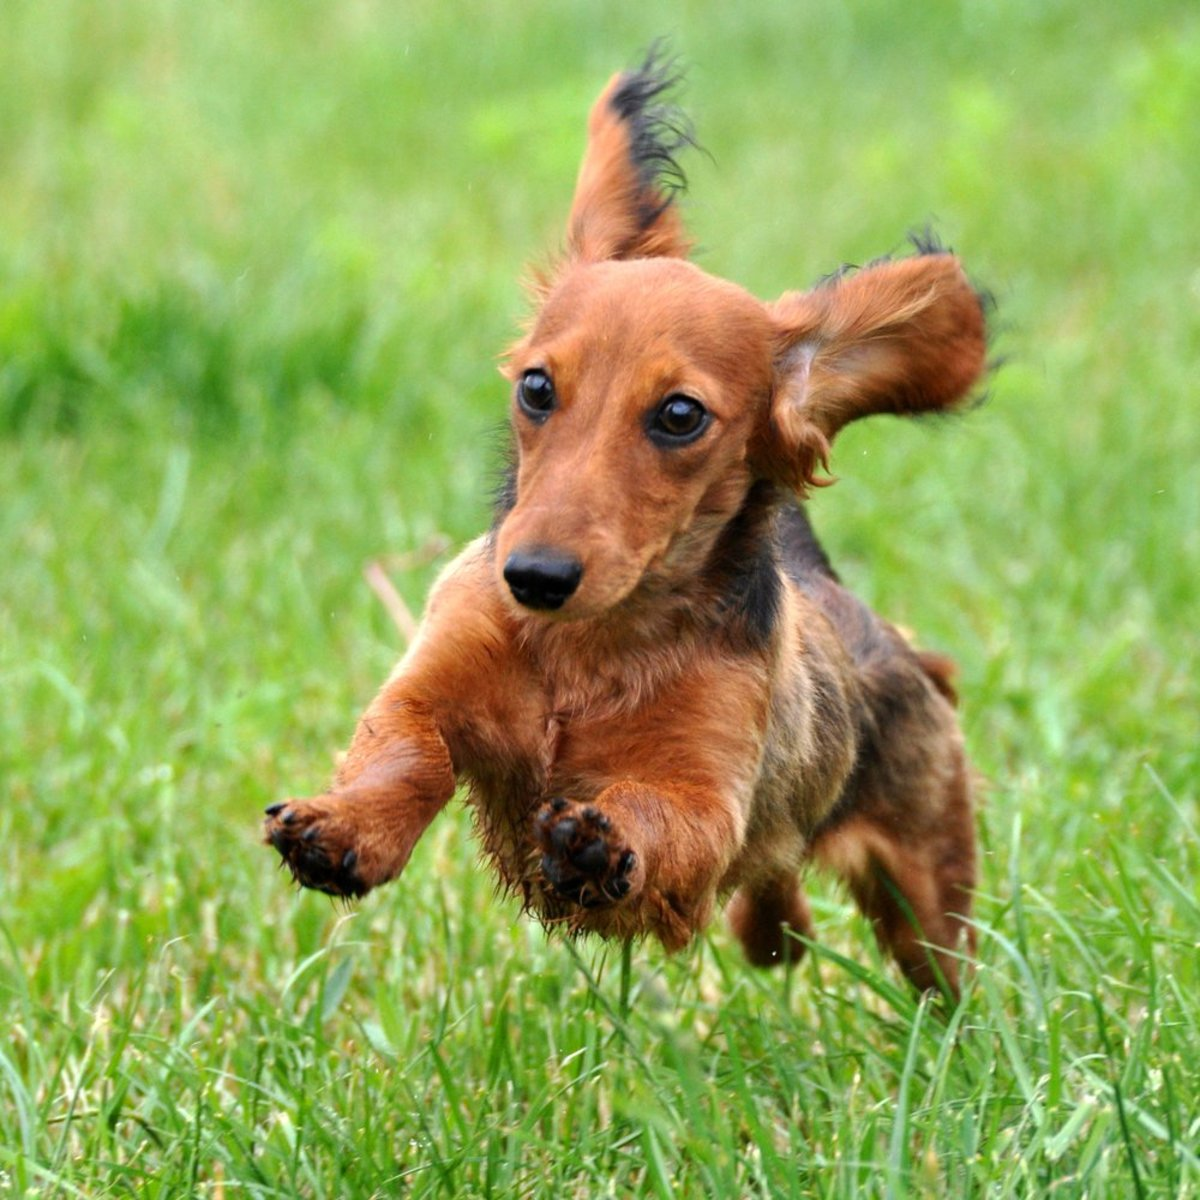 5 Daily Exercises You Can Do With Your Pooch